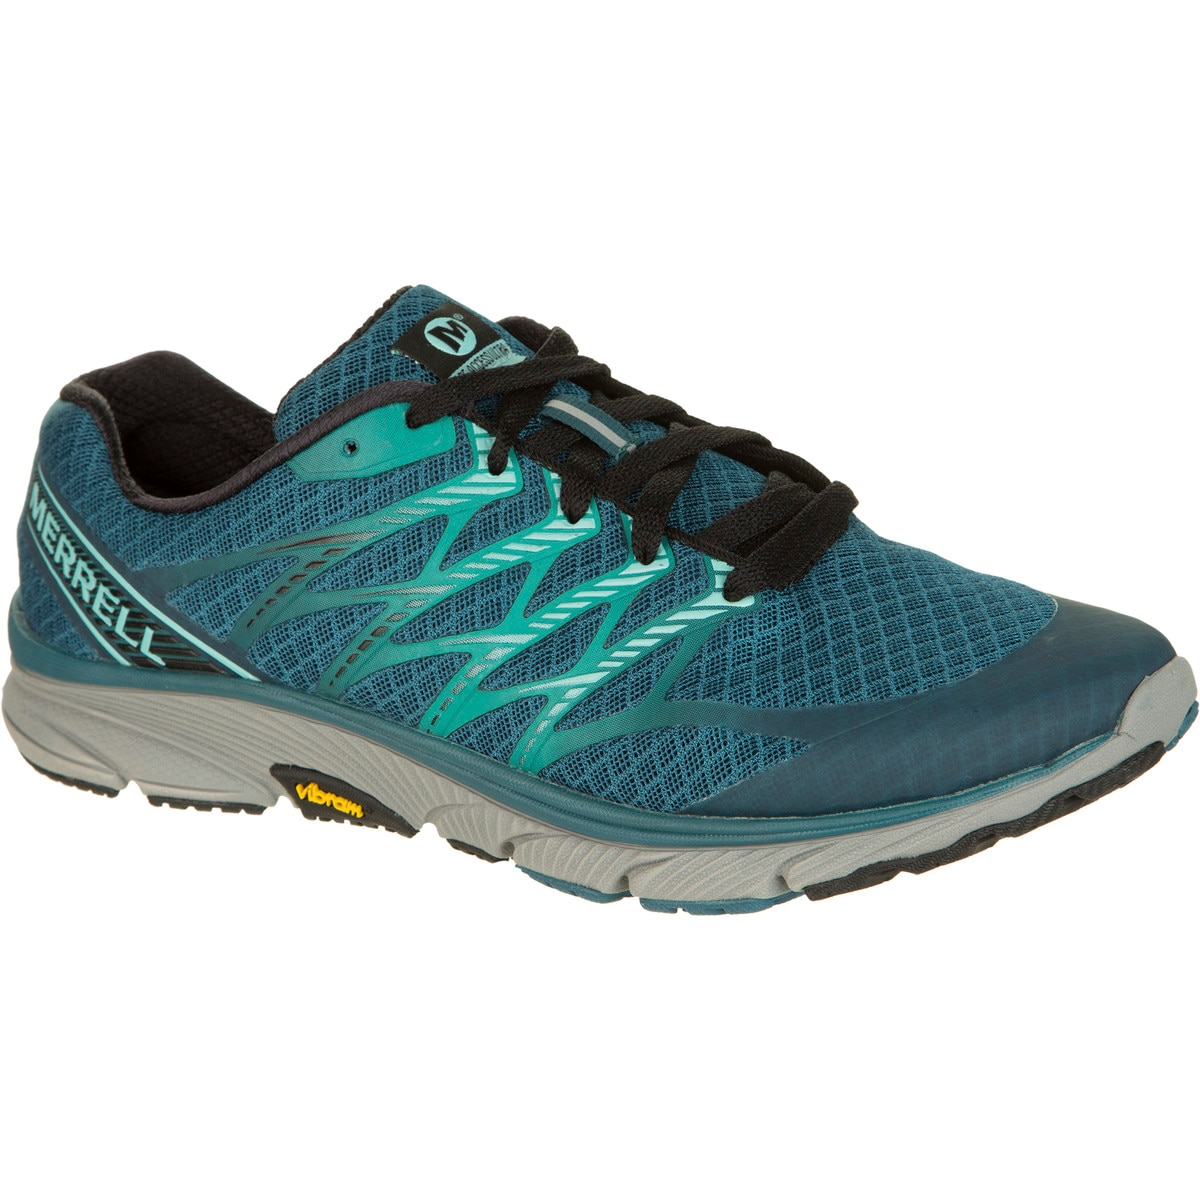 Merrell Barefoot Run Bare Access Ultra